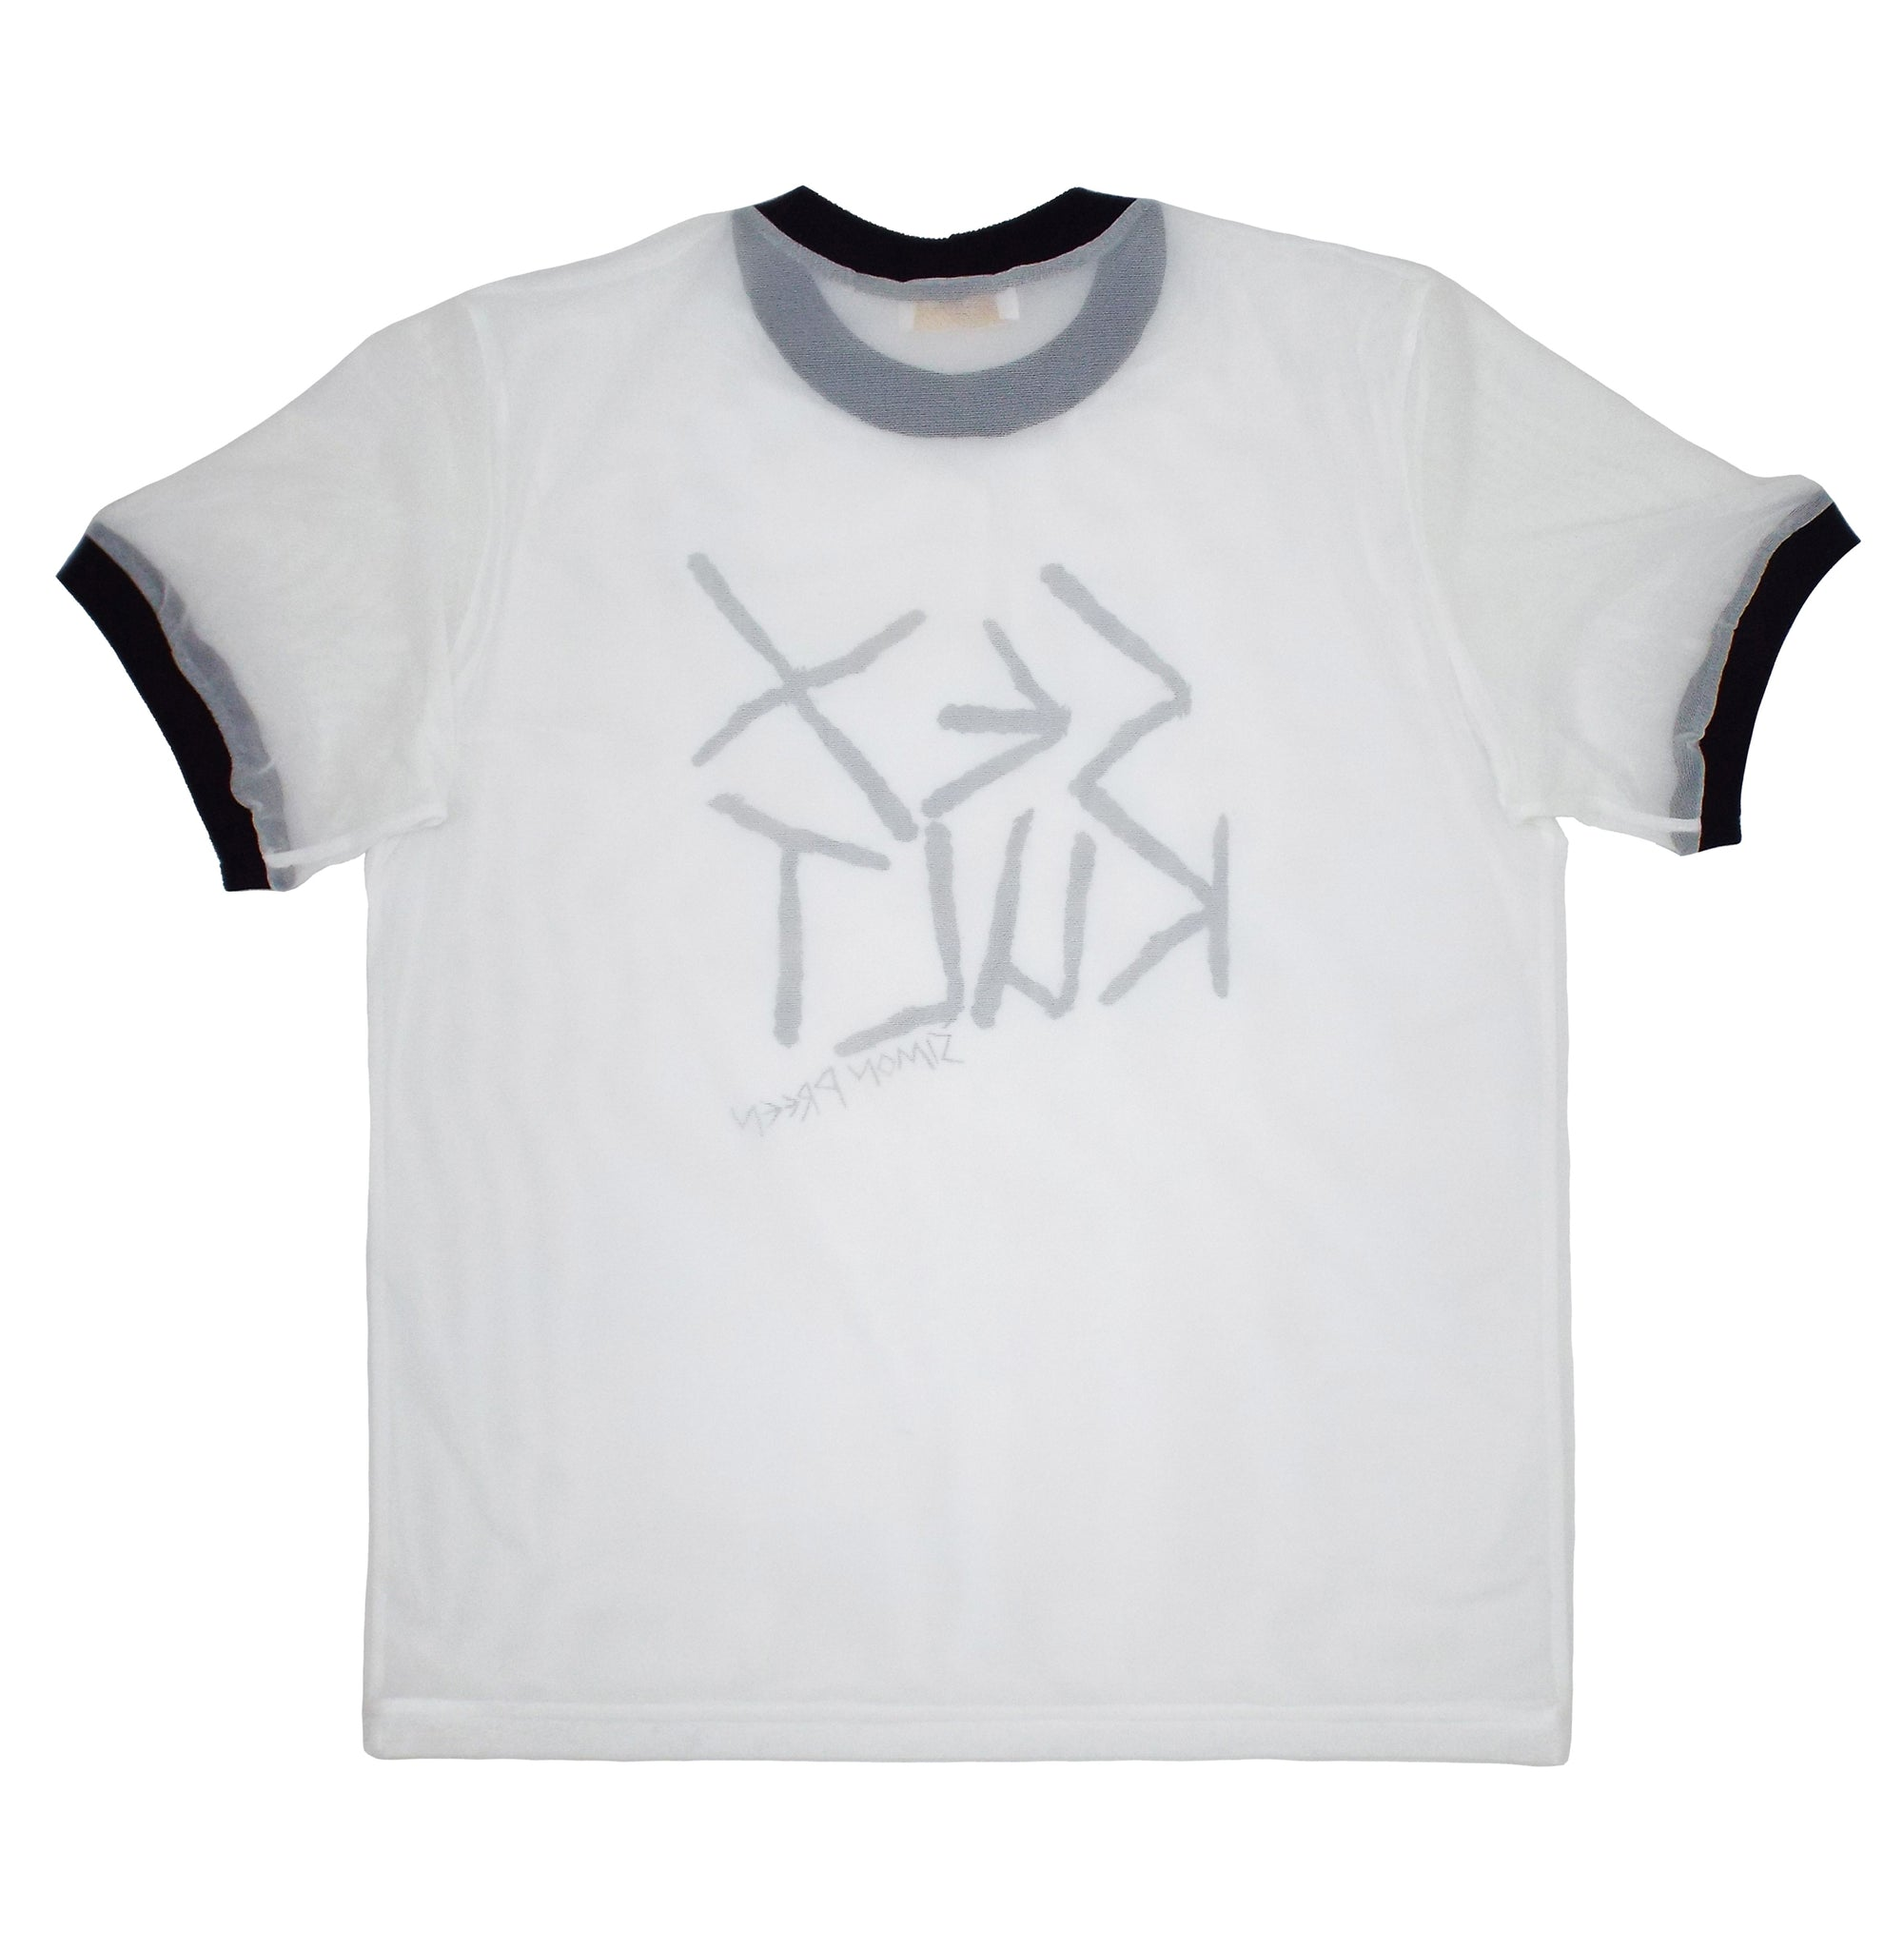 'SEX KULT' T-Shirt White